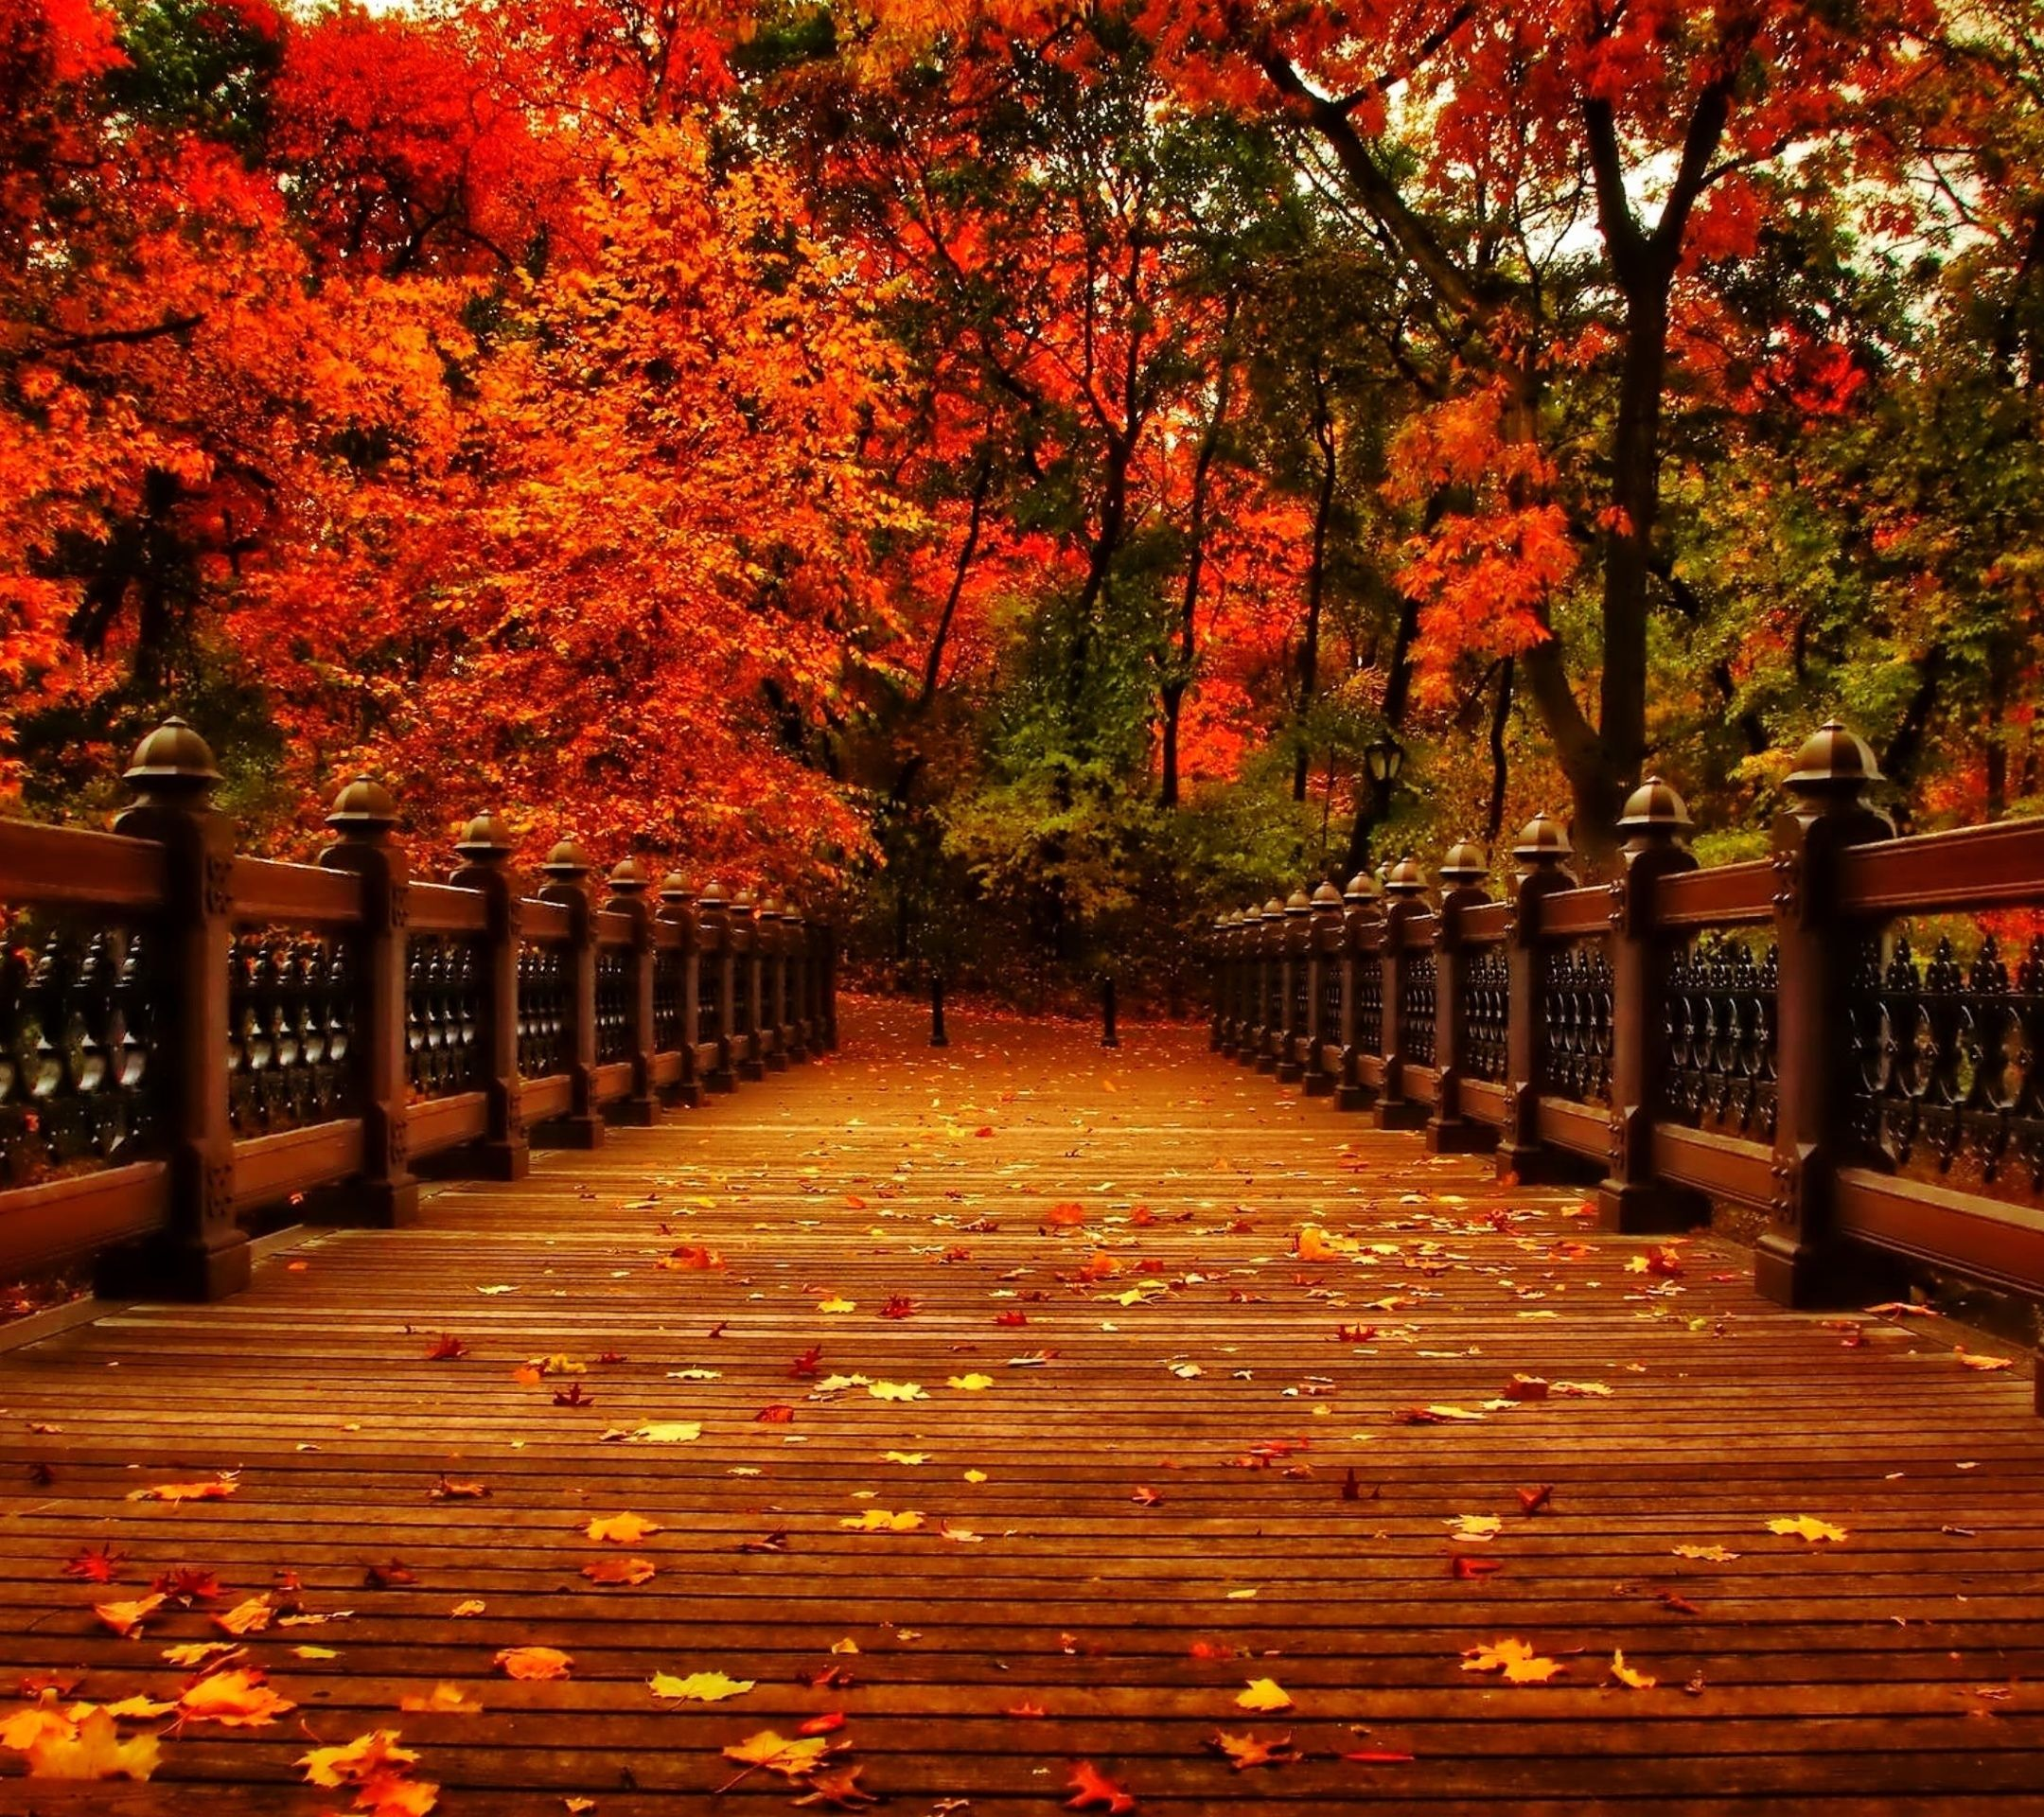 35 Fall Aesthetic Android Iphone Desktop Hd Backgrounds Wallpapers 1080p 4k 2160x1920 2020